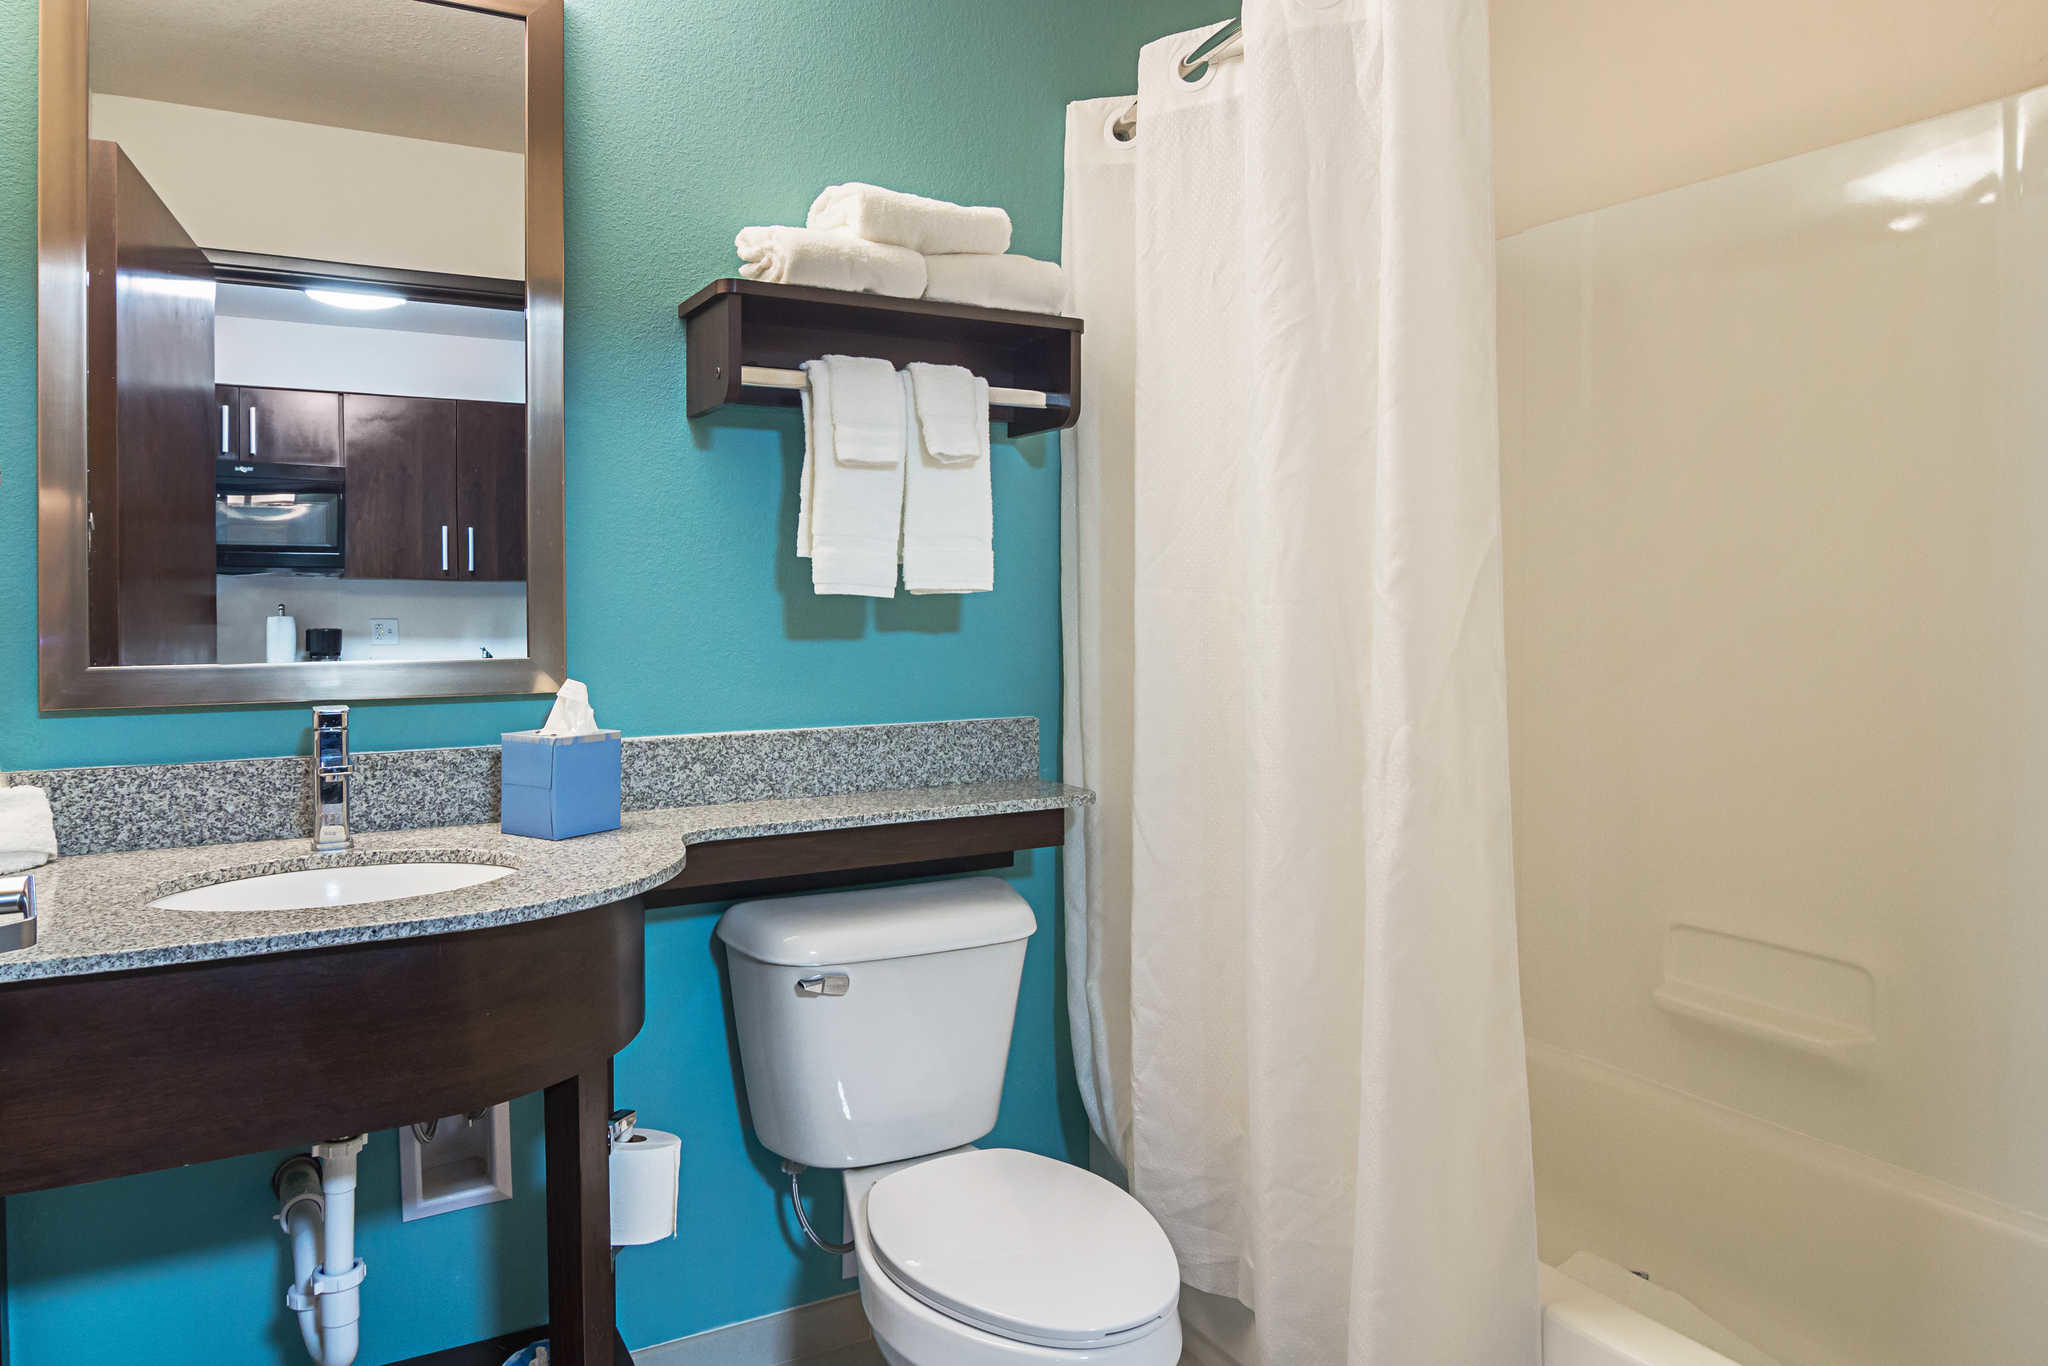 Suburban Extended Stay Hotel image 24